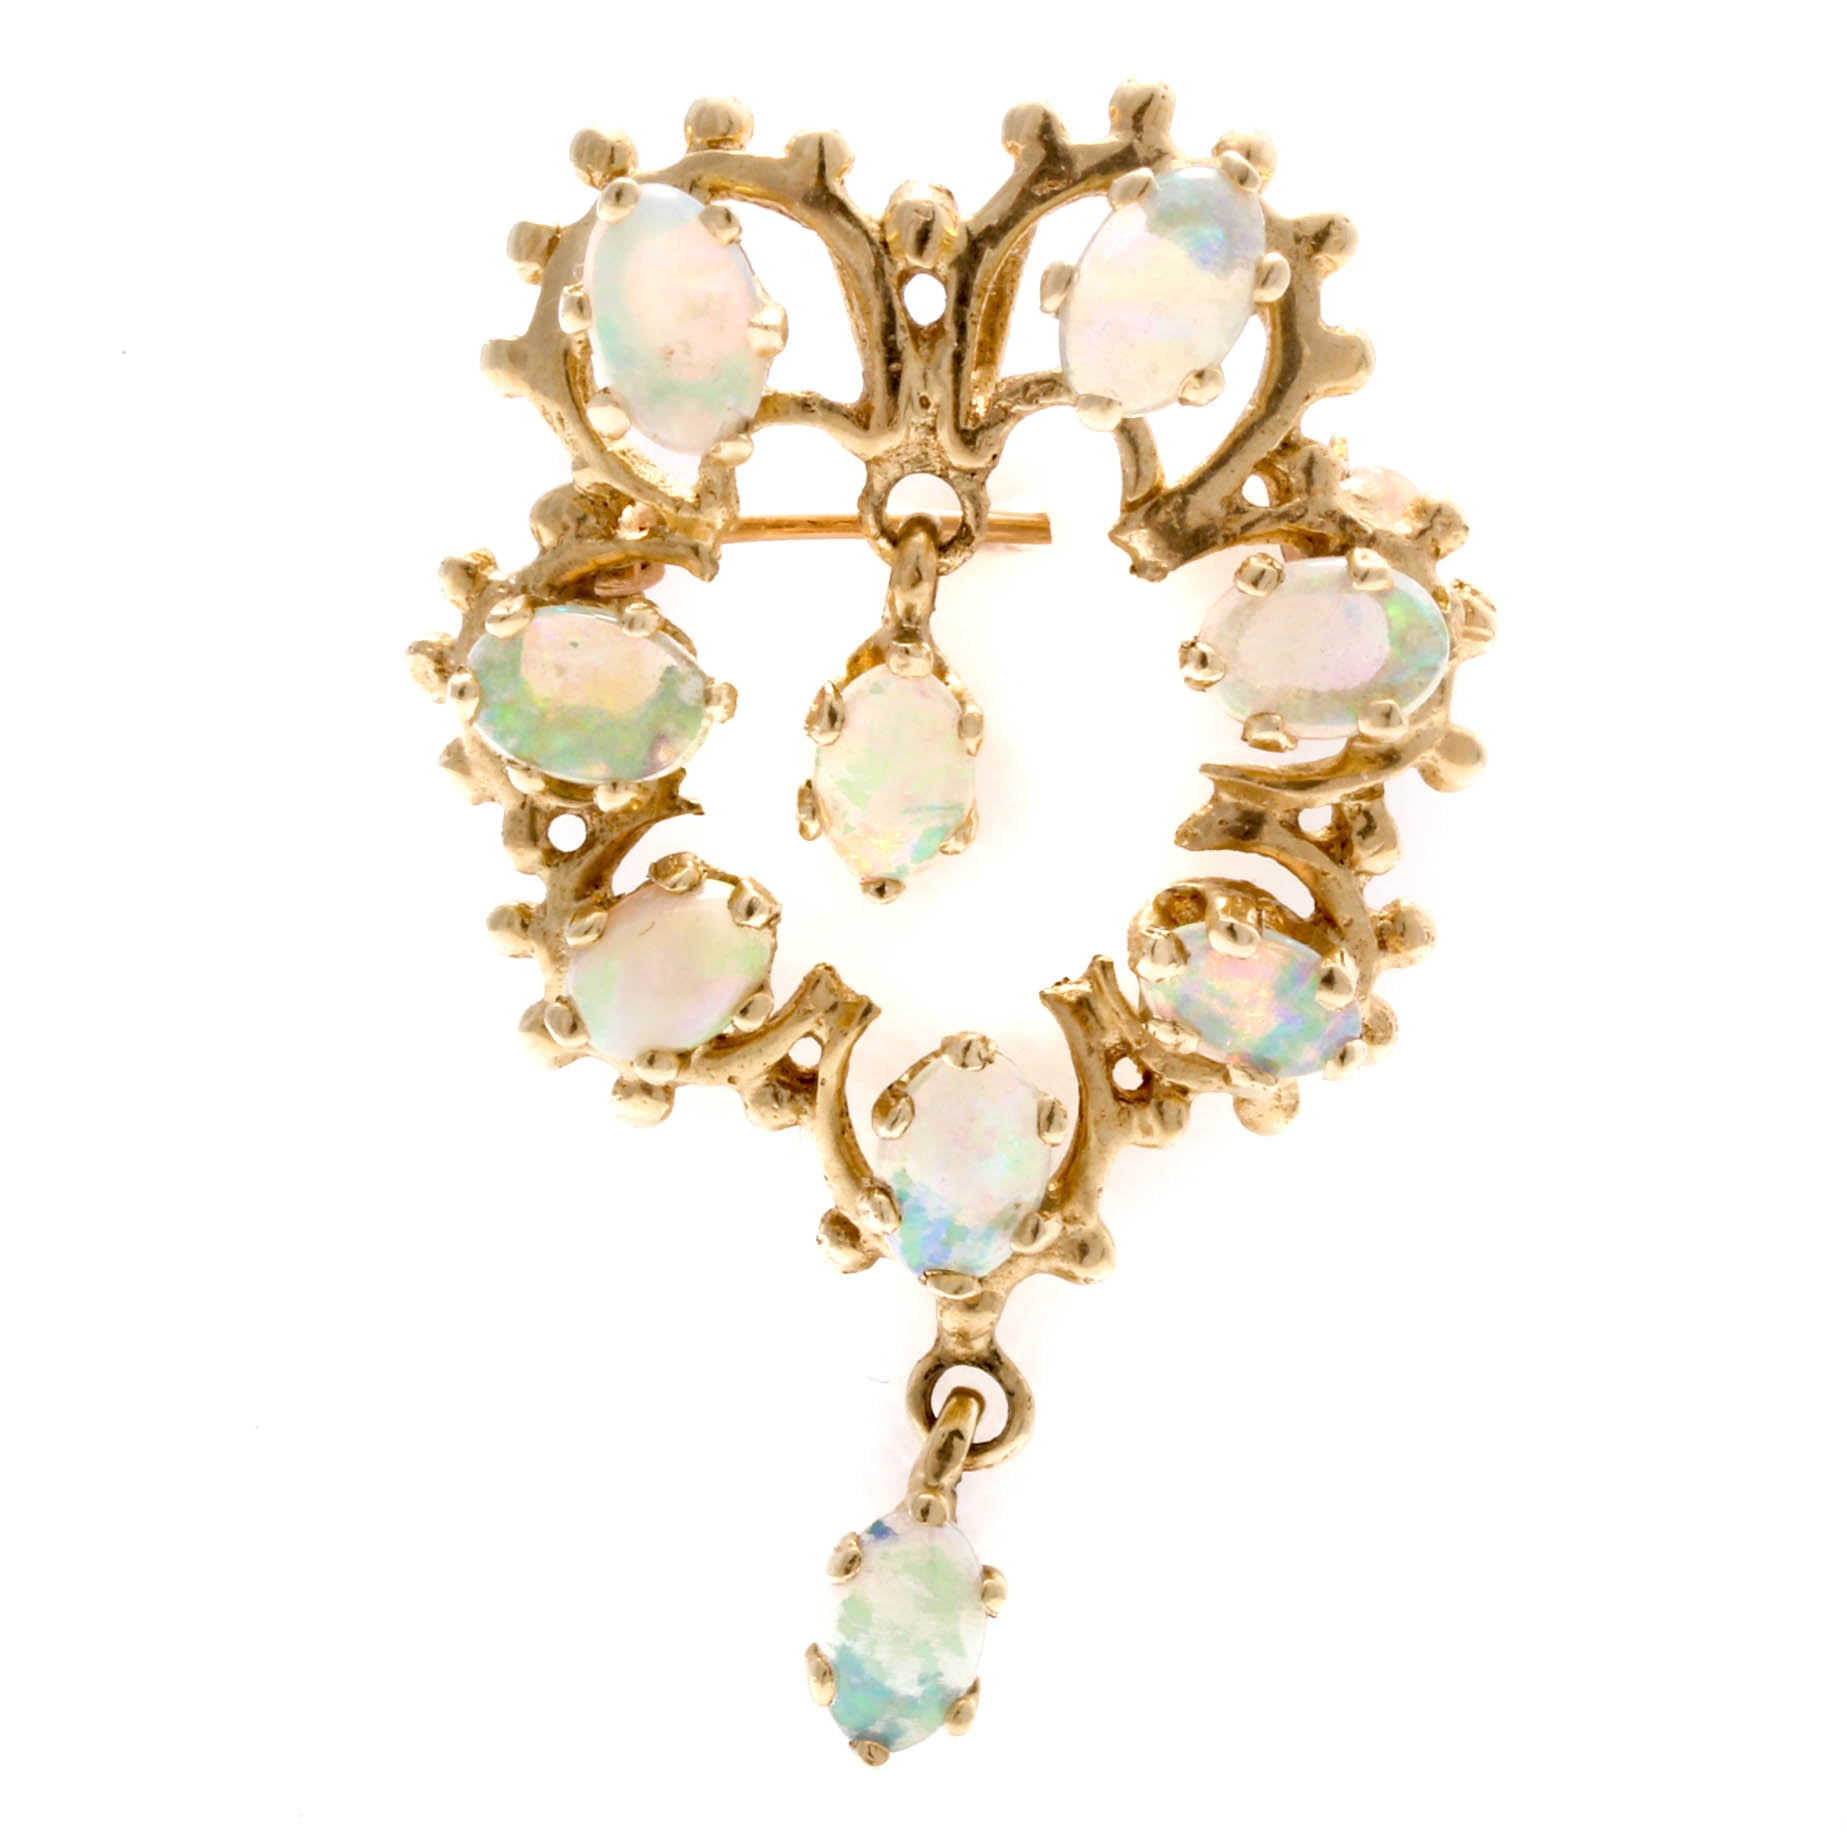 Vintage 14K Yellow Gold and Opal Converter Horseshoe Pendant Brooch